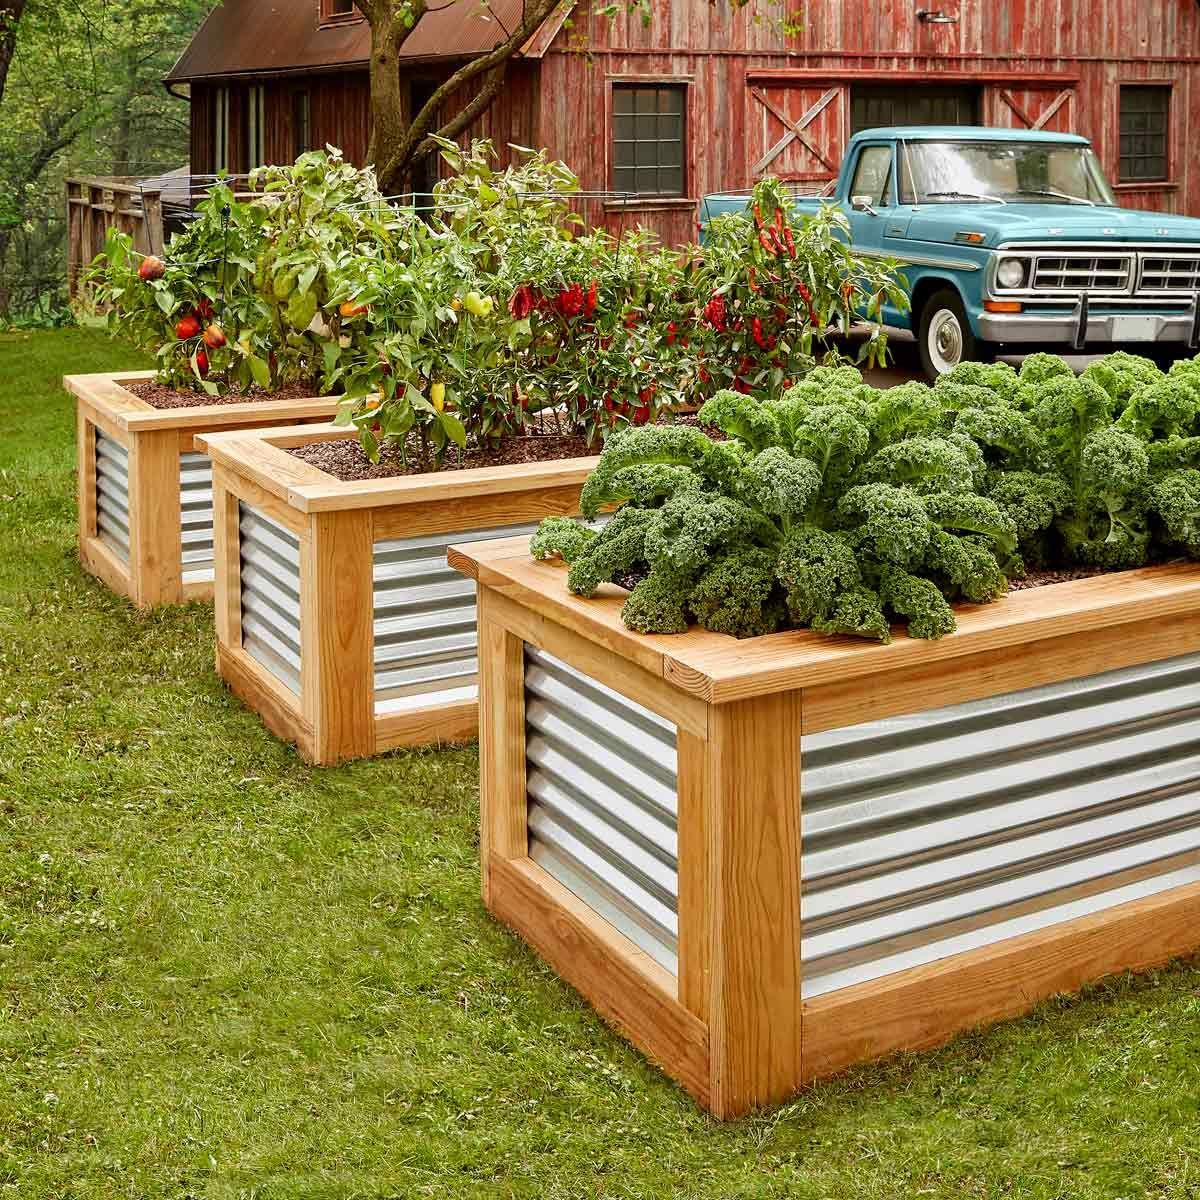 Best Raised Garden Bed For Backyard Landscaping Ideas To Try Asap17